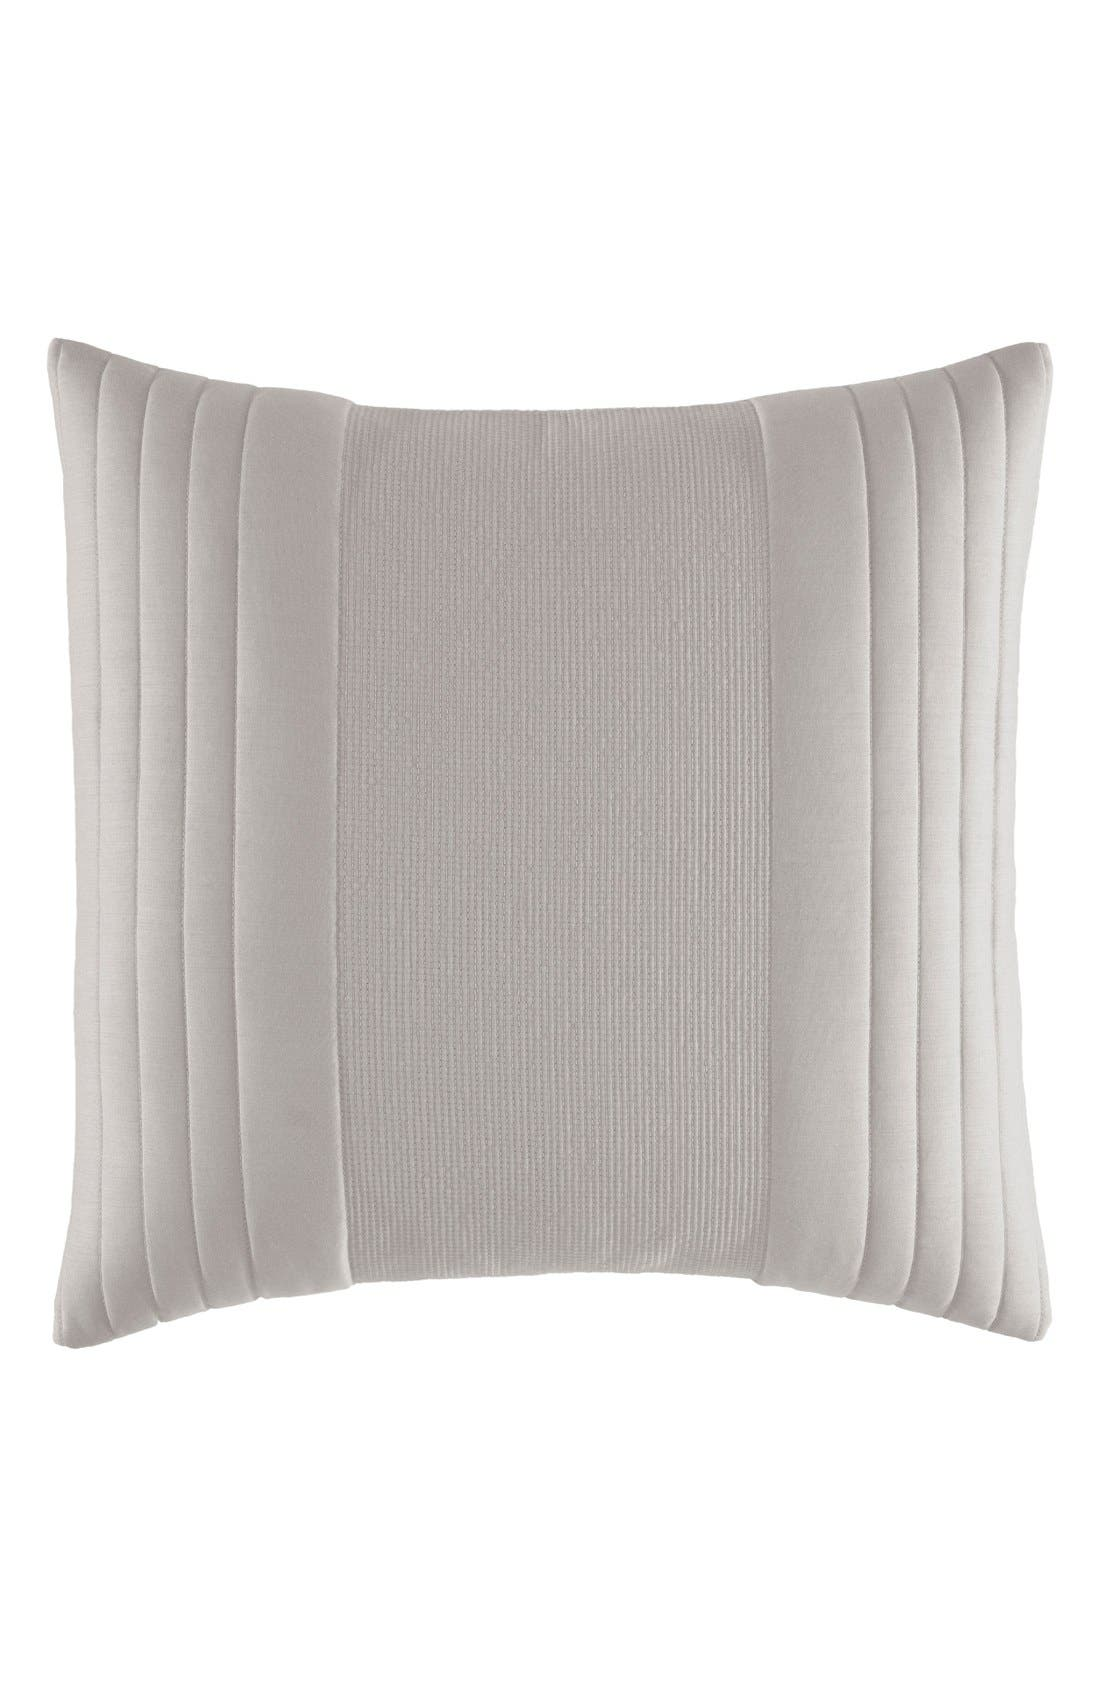 Texture Stripe Pillow,                         Main,                         color, Grey Putty